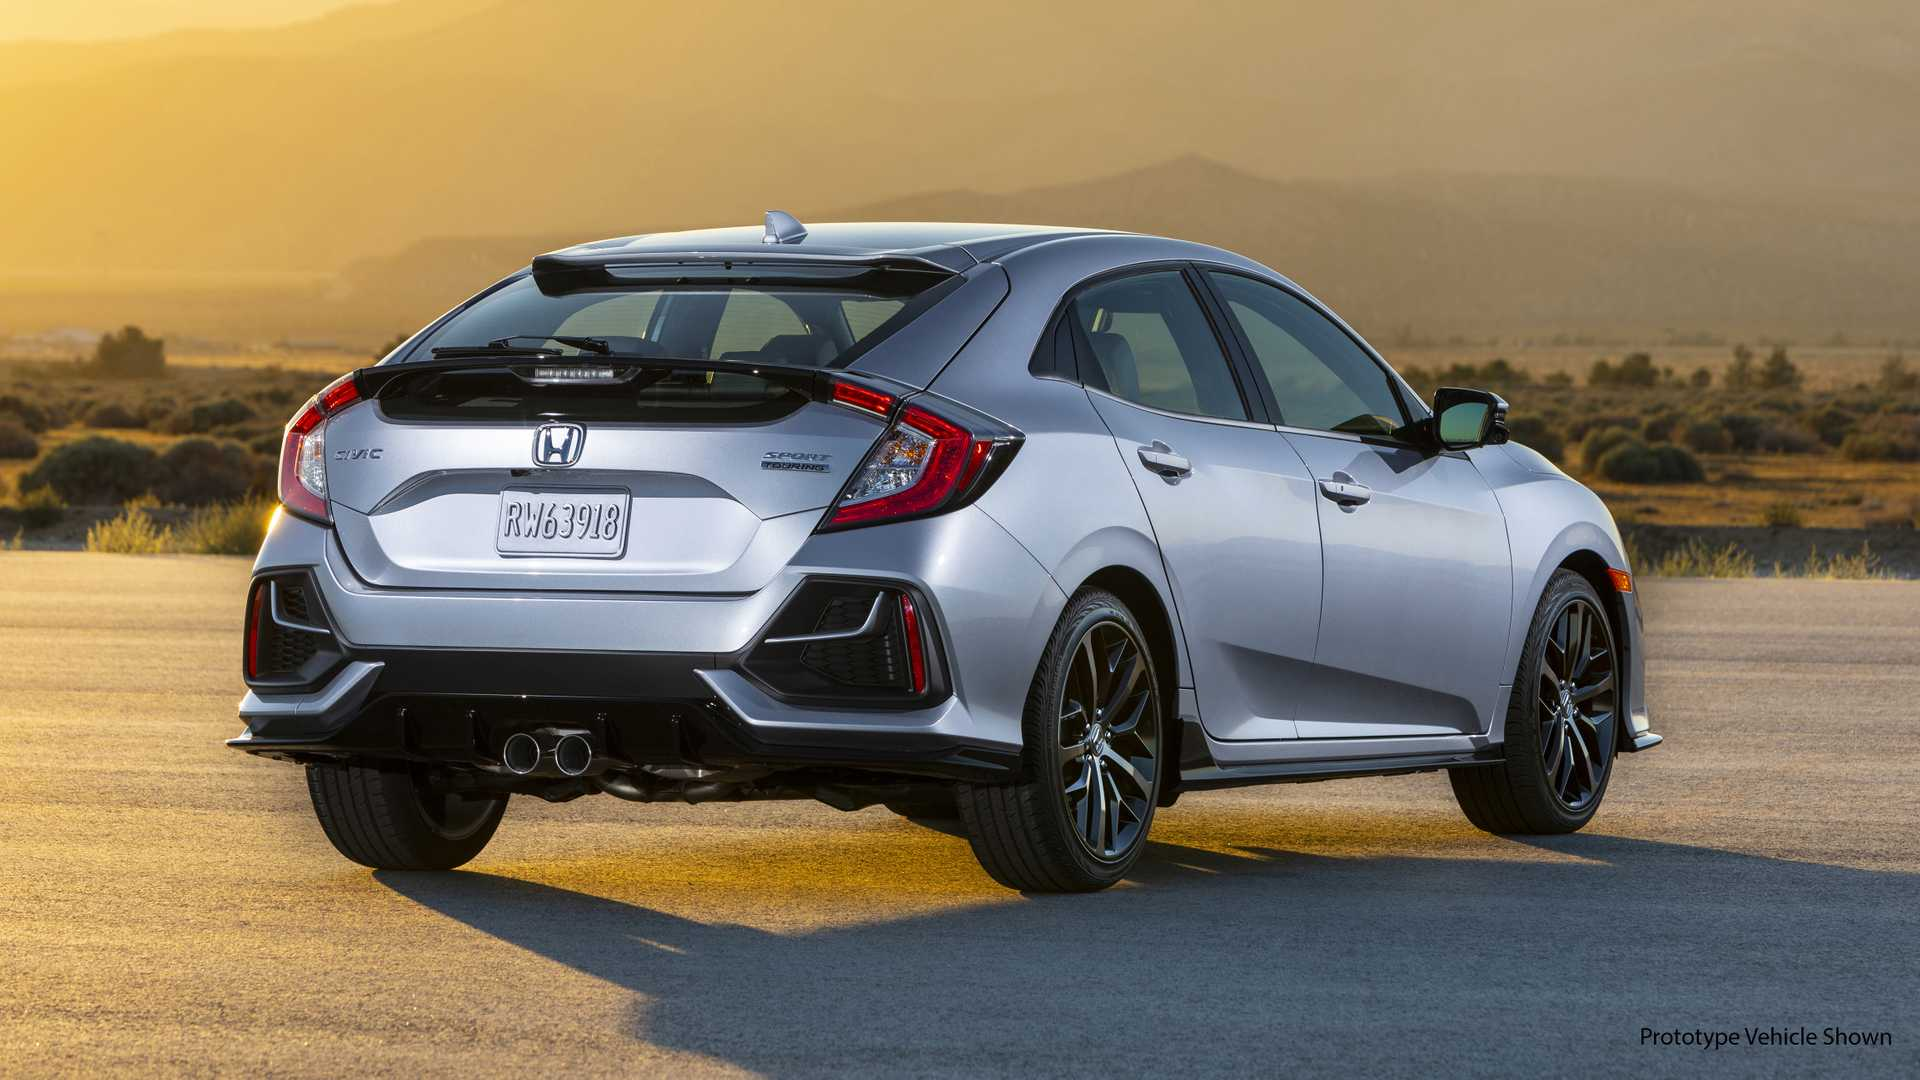 2020 Honda Civic Hatchback Review | Expert Reviews | J.D ...